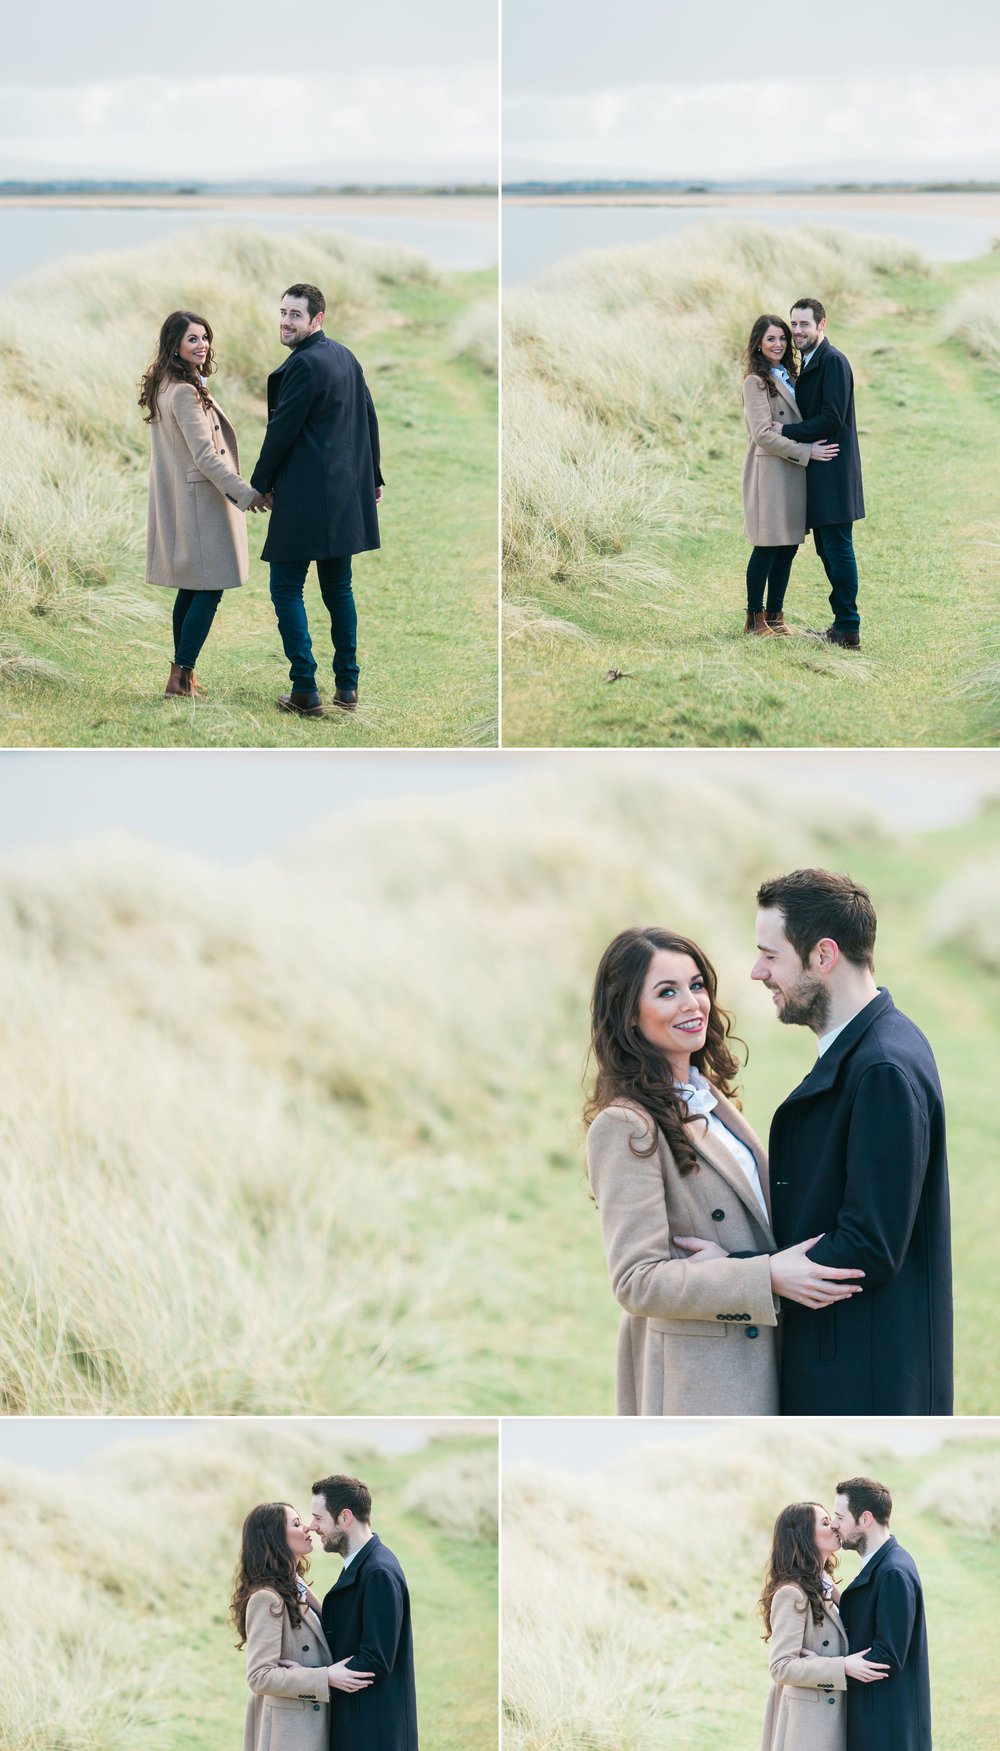 Leanne-and-Dave-Ballyliffin-Engagement-0002-Michael-Gill-Photography.jpg